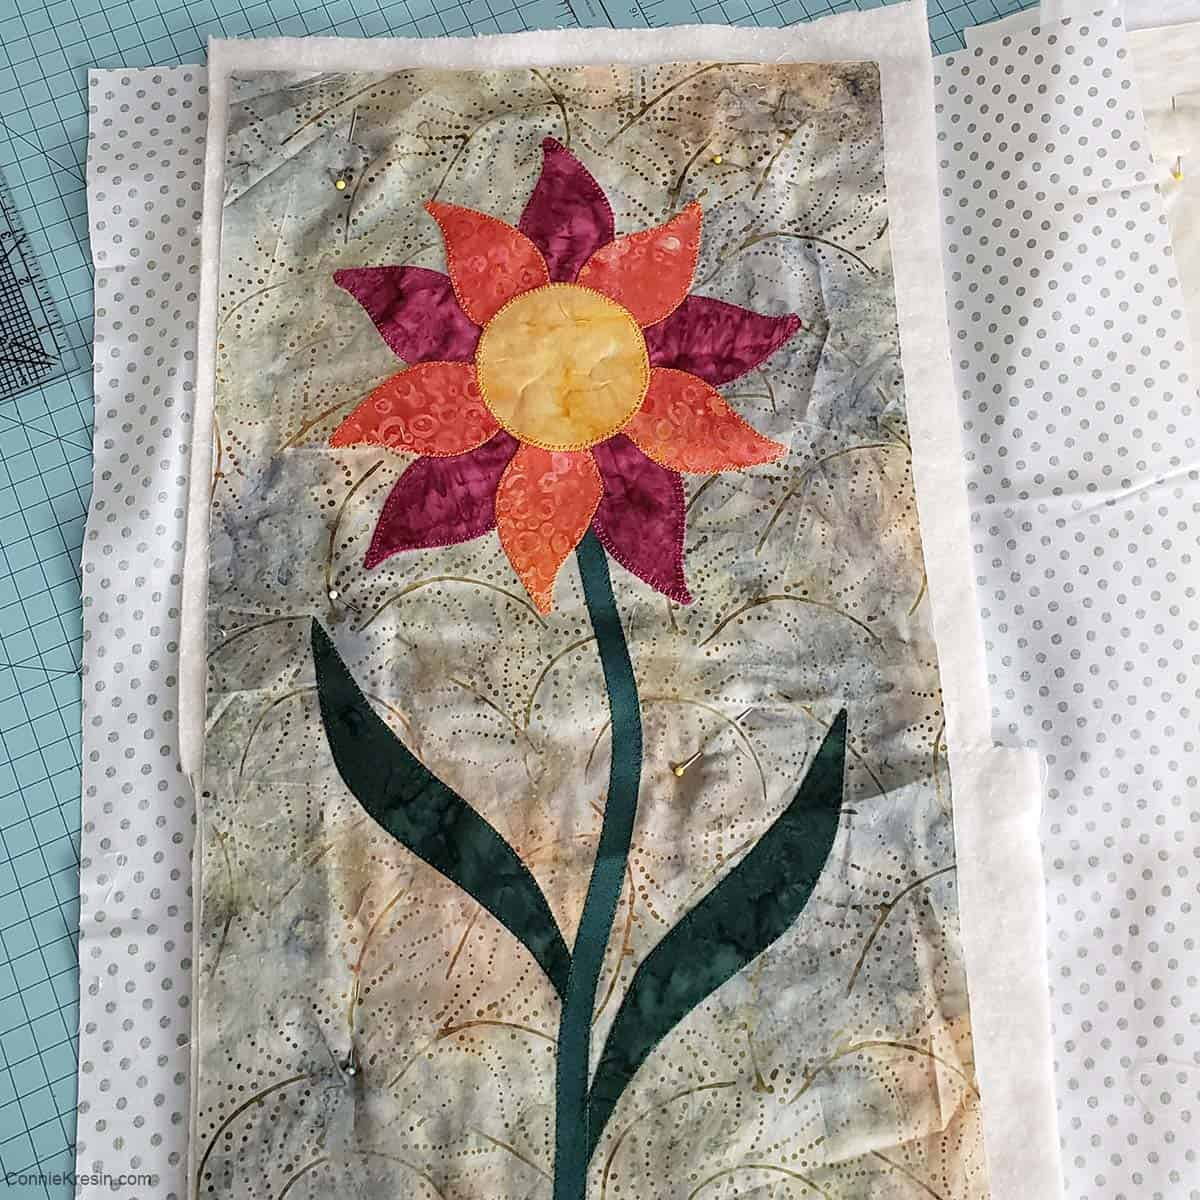 Tall flower with button hole applique